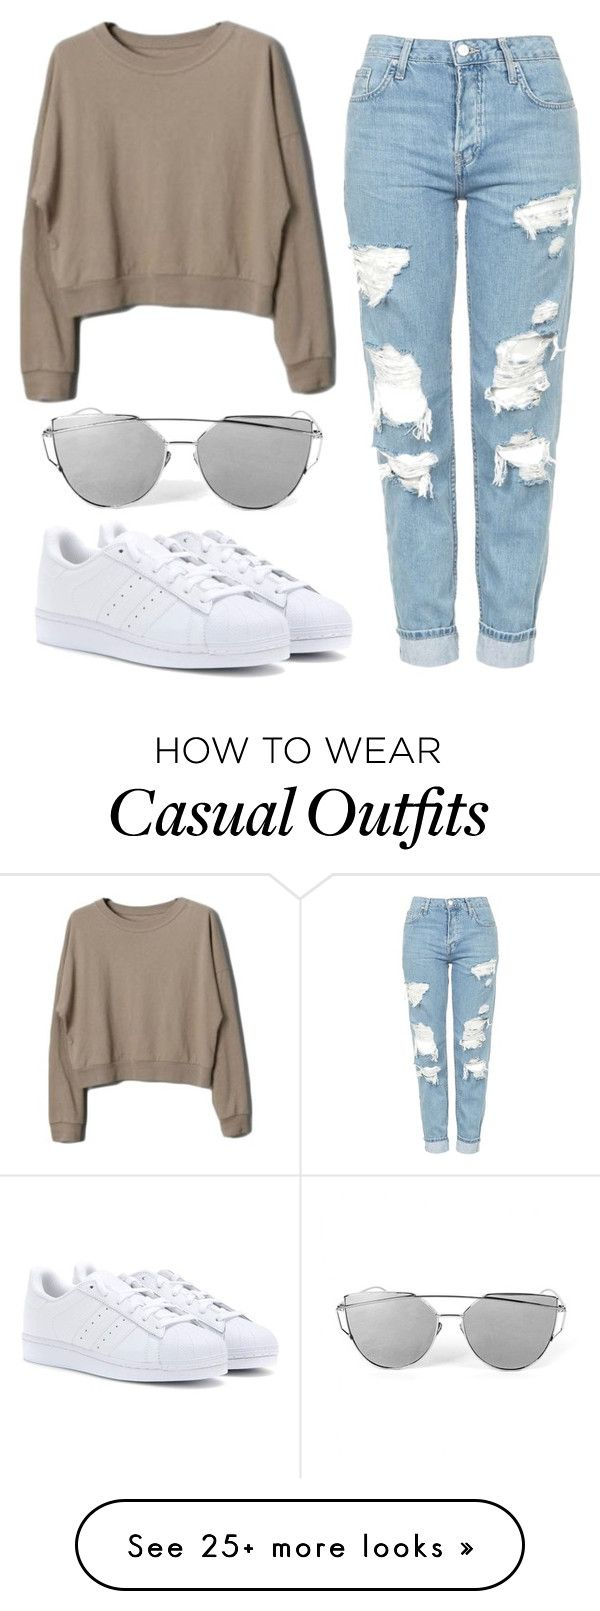 """Comfy Casual"" by nyah-king on Polyvore featuring Topshop and adidas"